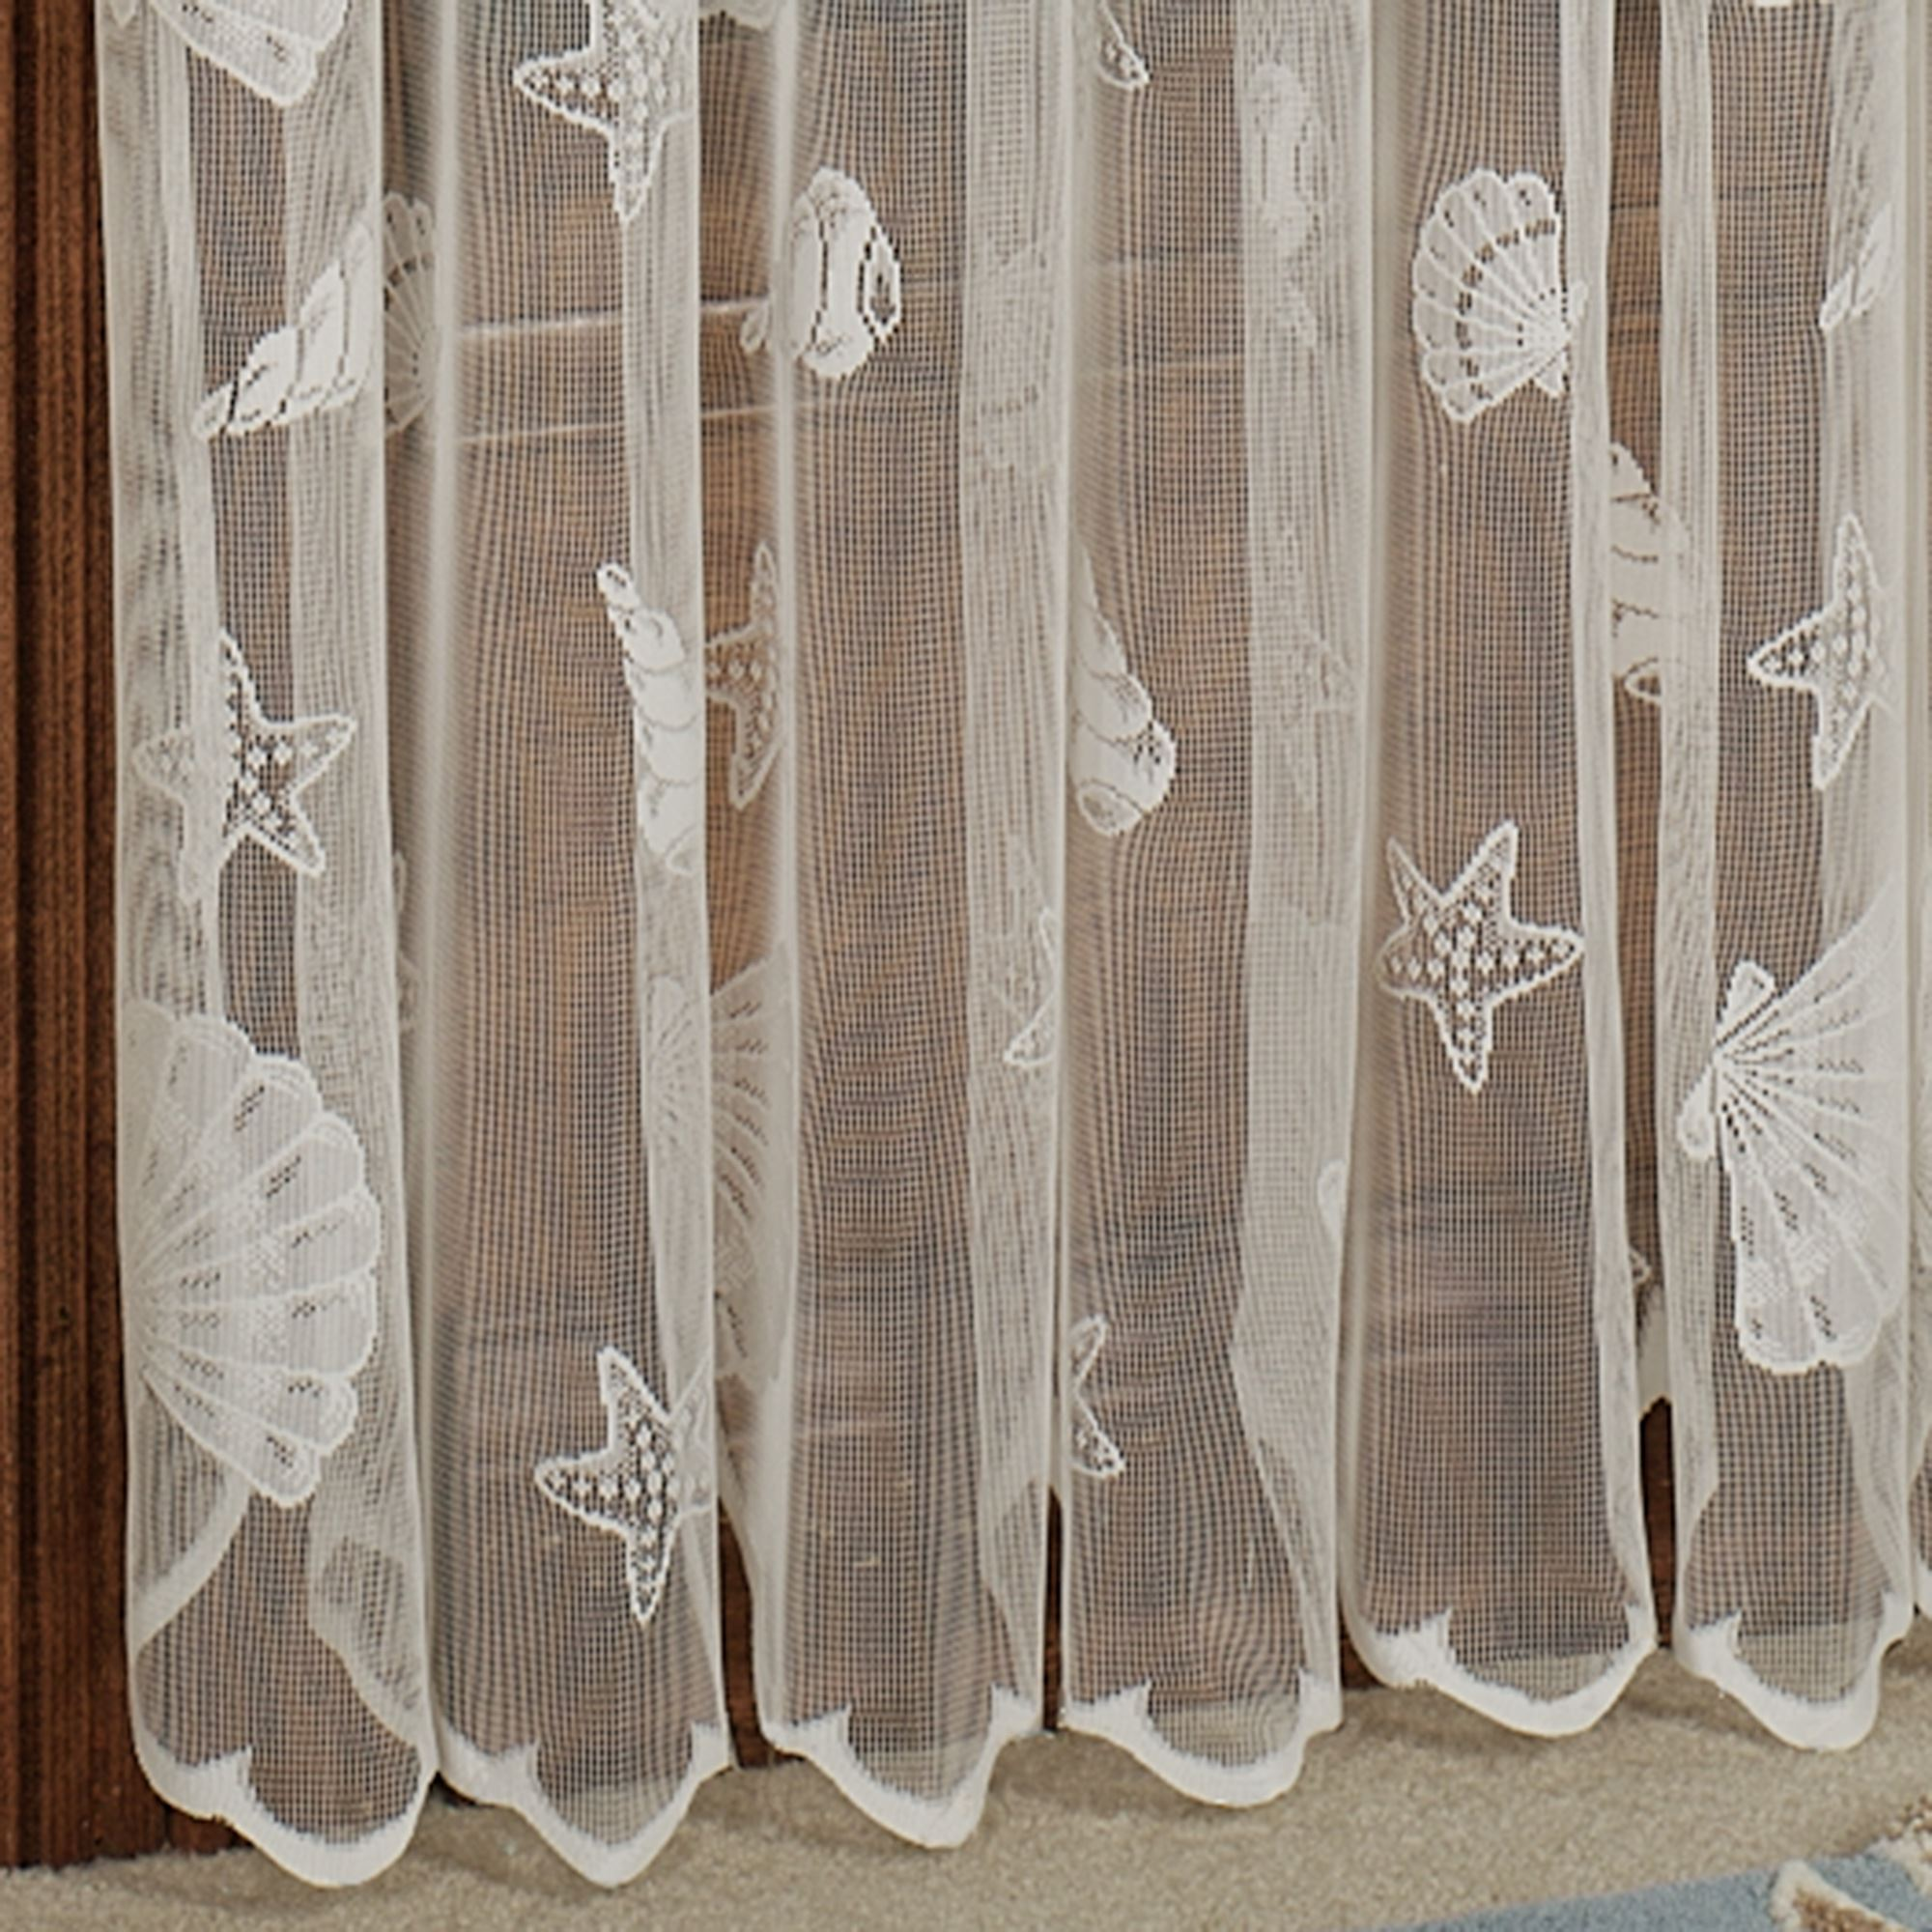 home beach all inspiration and valance with valances of tropical bathroom pebblebathroom window stunning styles image uncategorized design curtains themed tfile